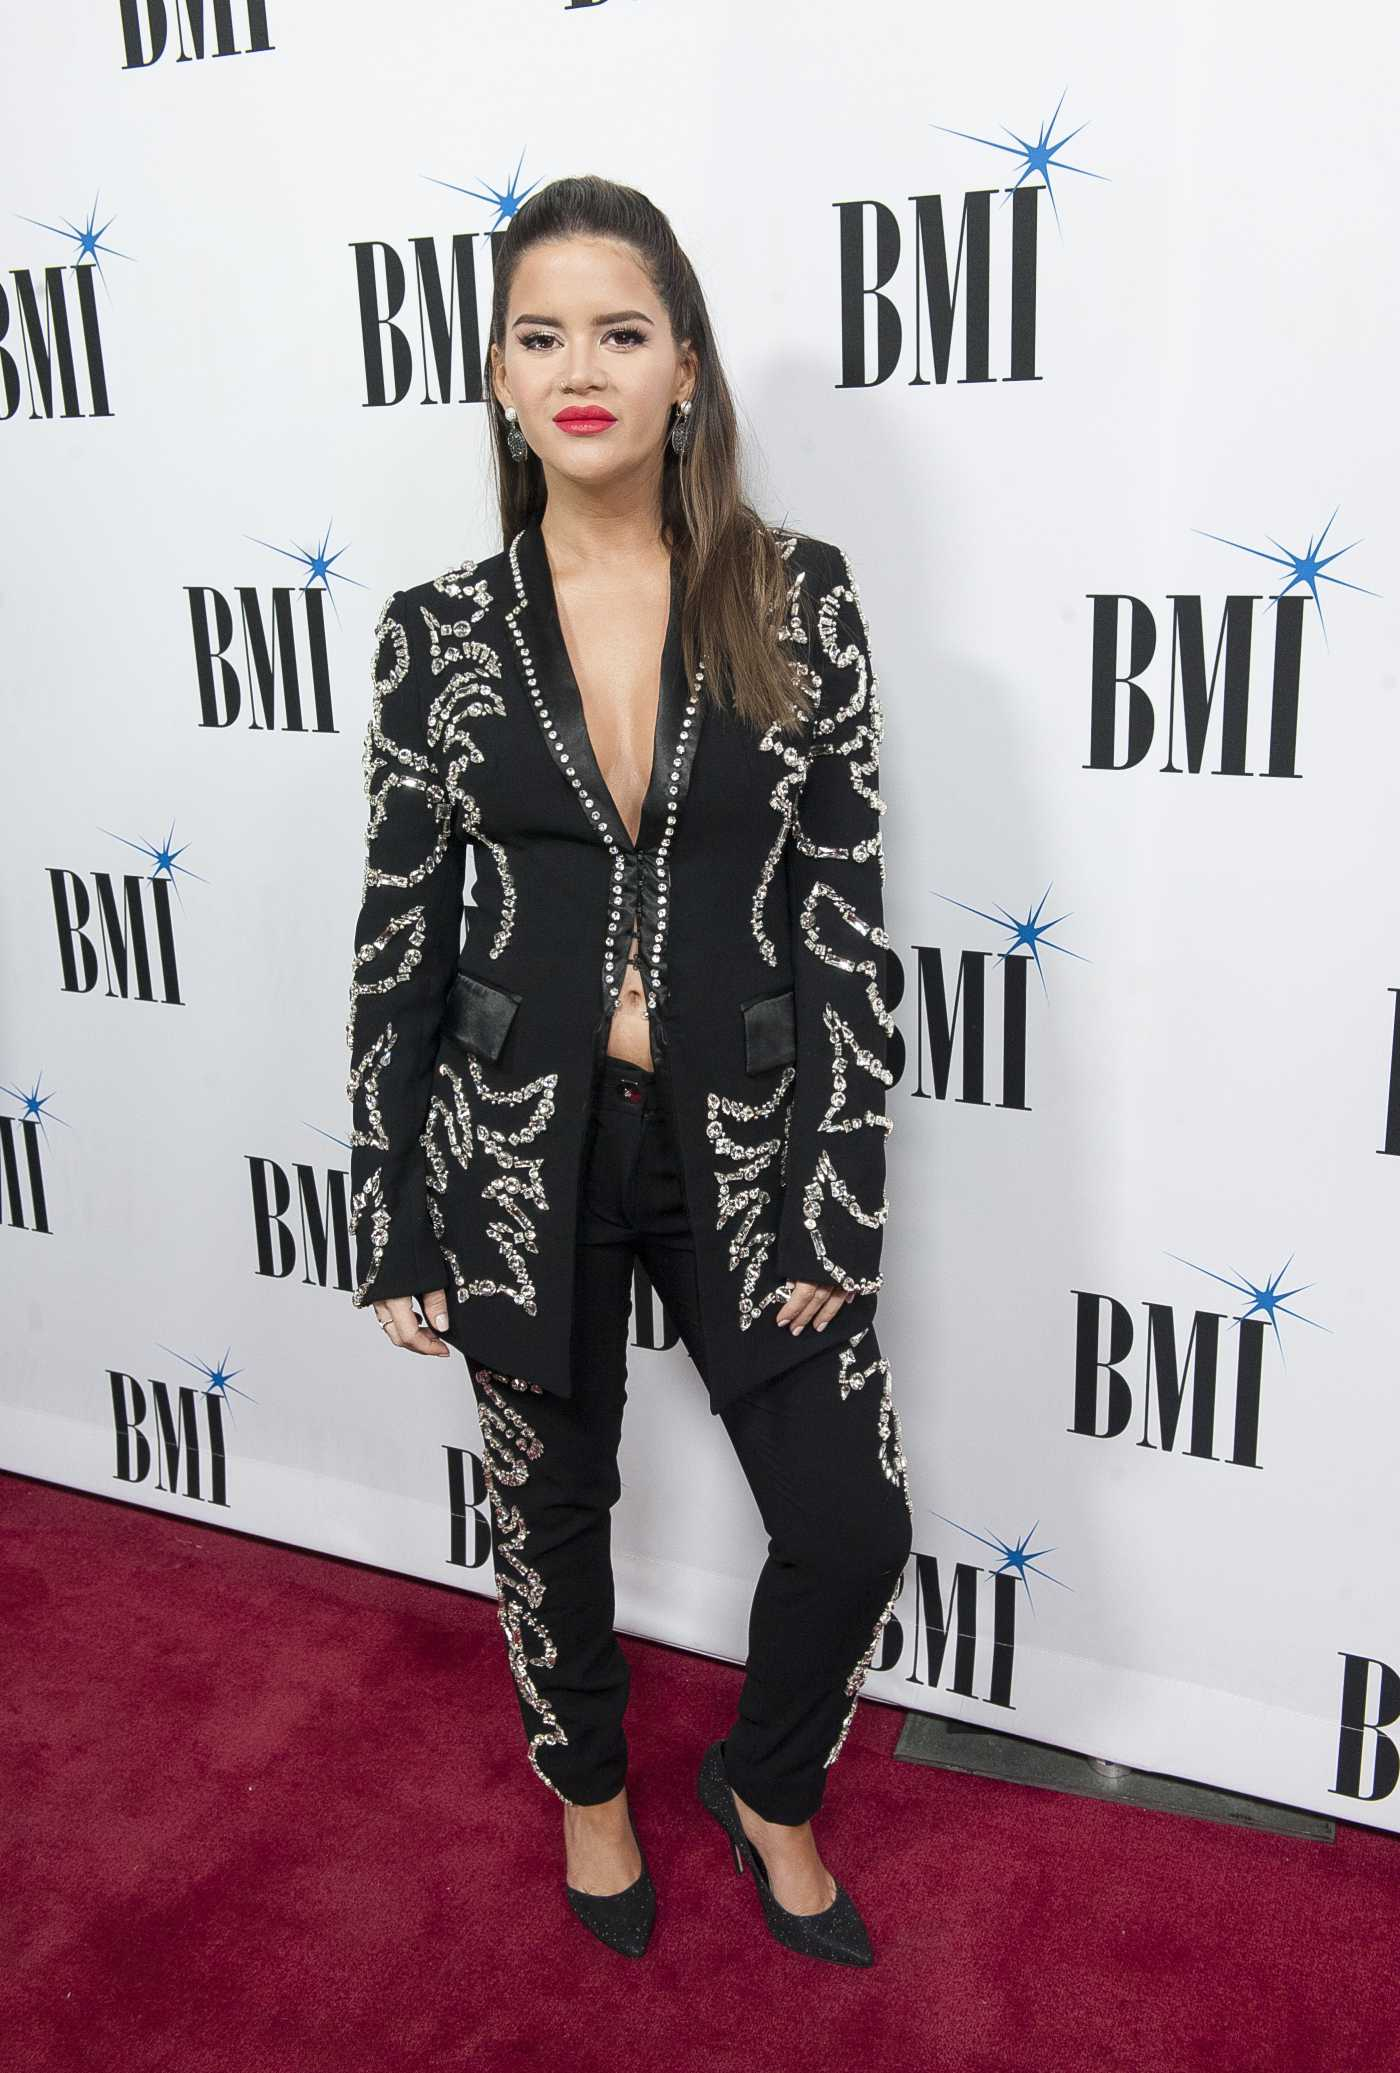 Maren Morris Attends the 67th Annual BMI Country Awards in Nashville 11/12/2019